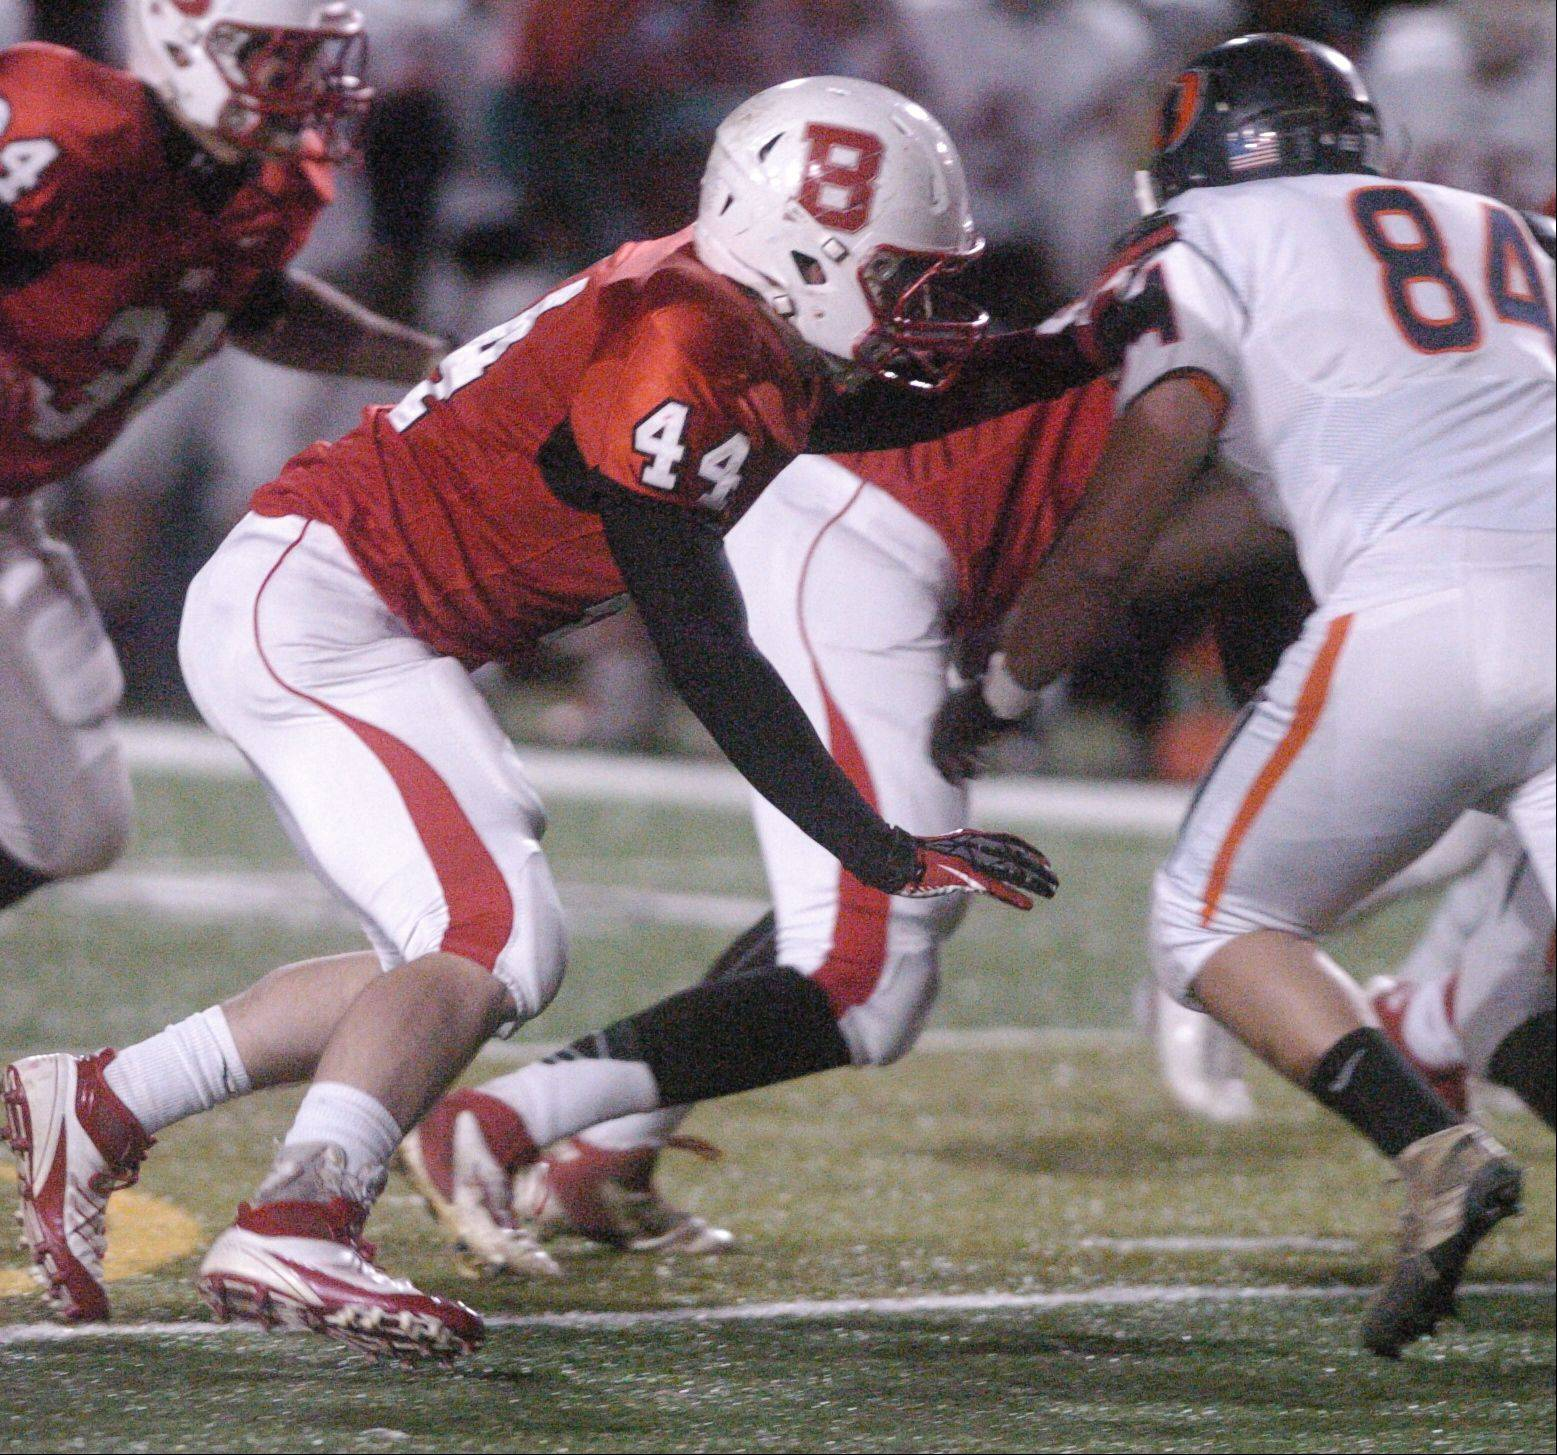 Benet hosted Oswego in Week 2 of the IHSA football playoffs Friday night at Benedictine University in Lisle